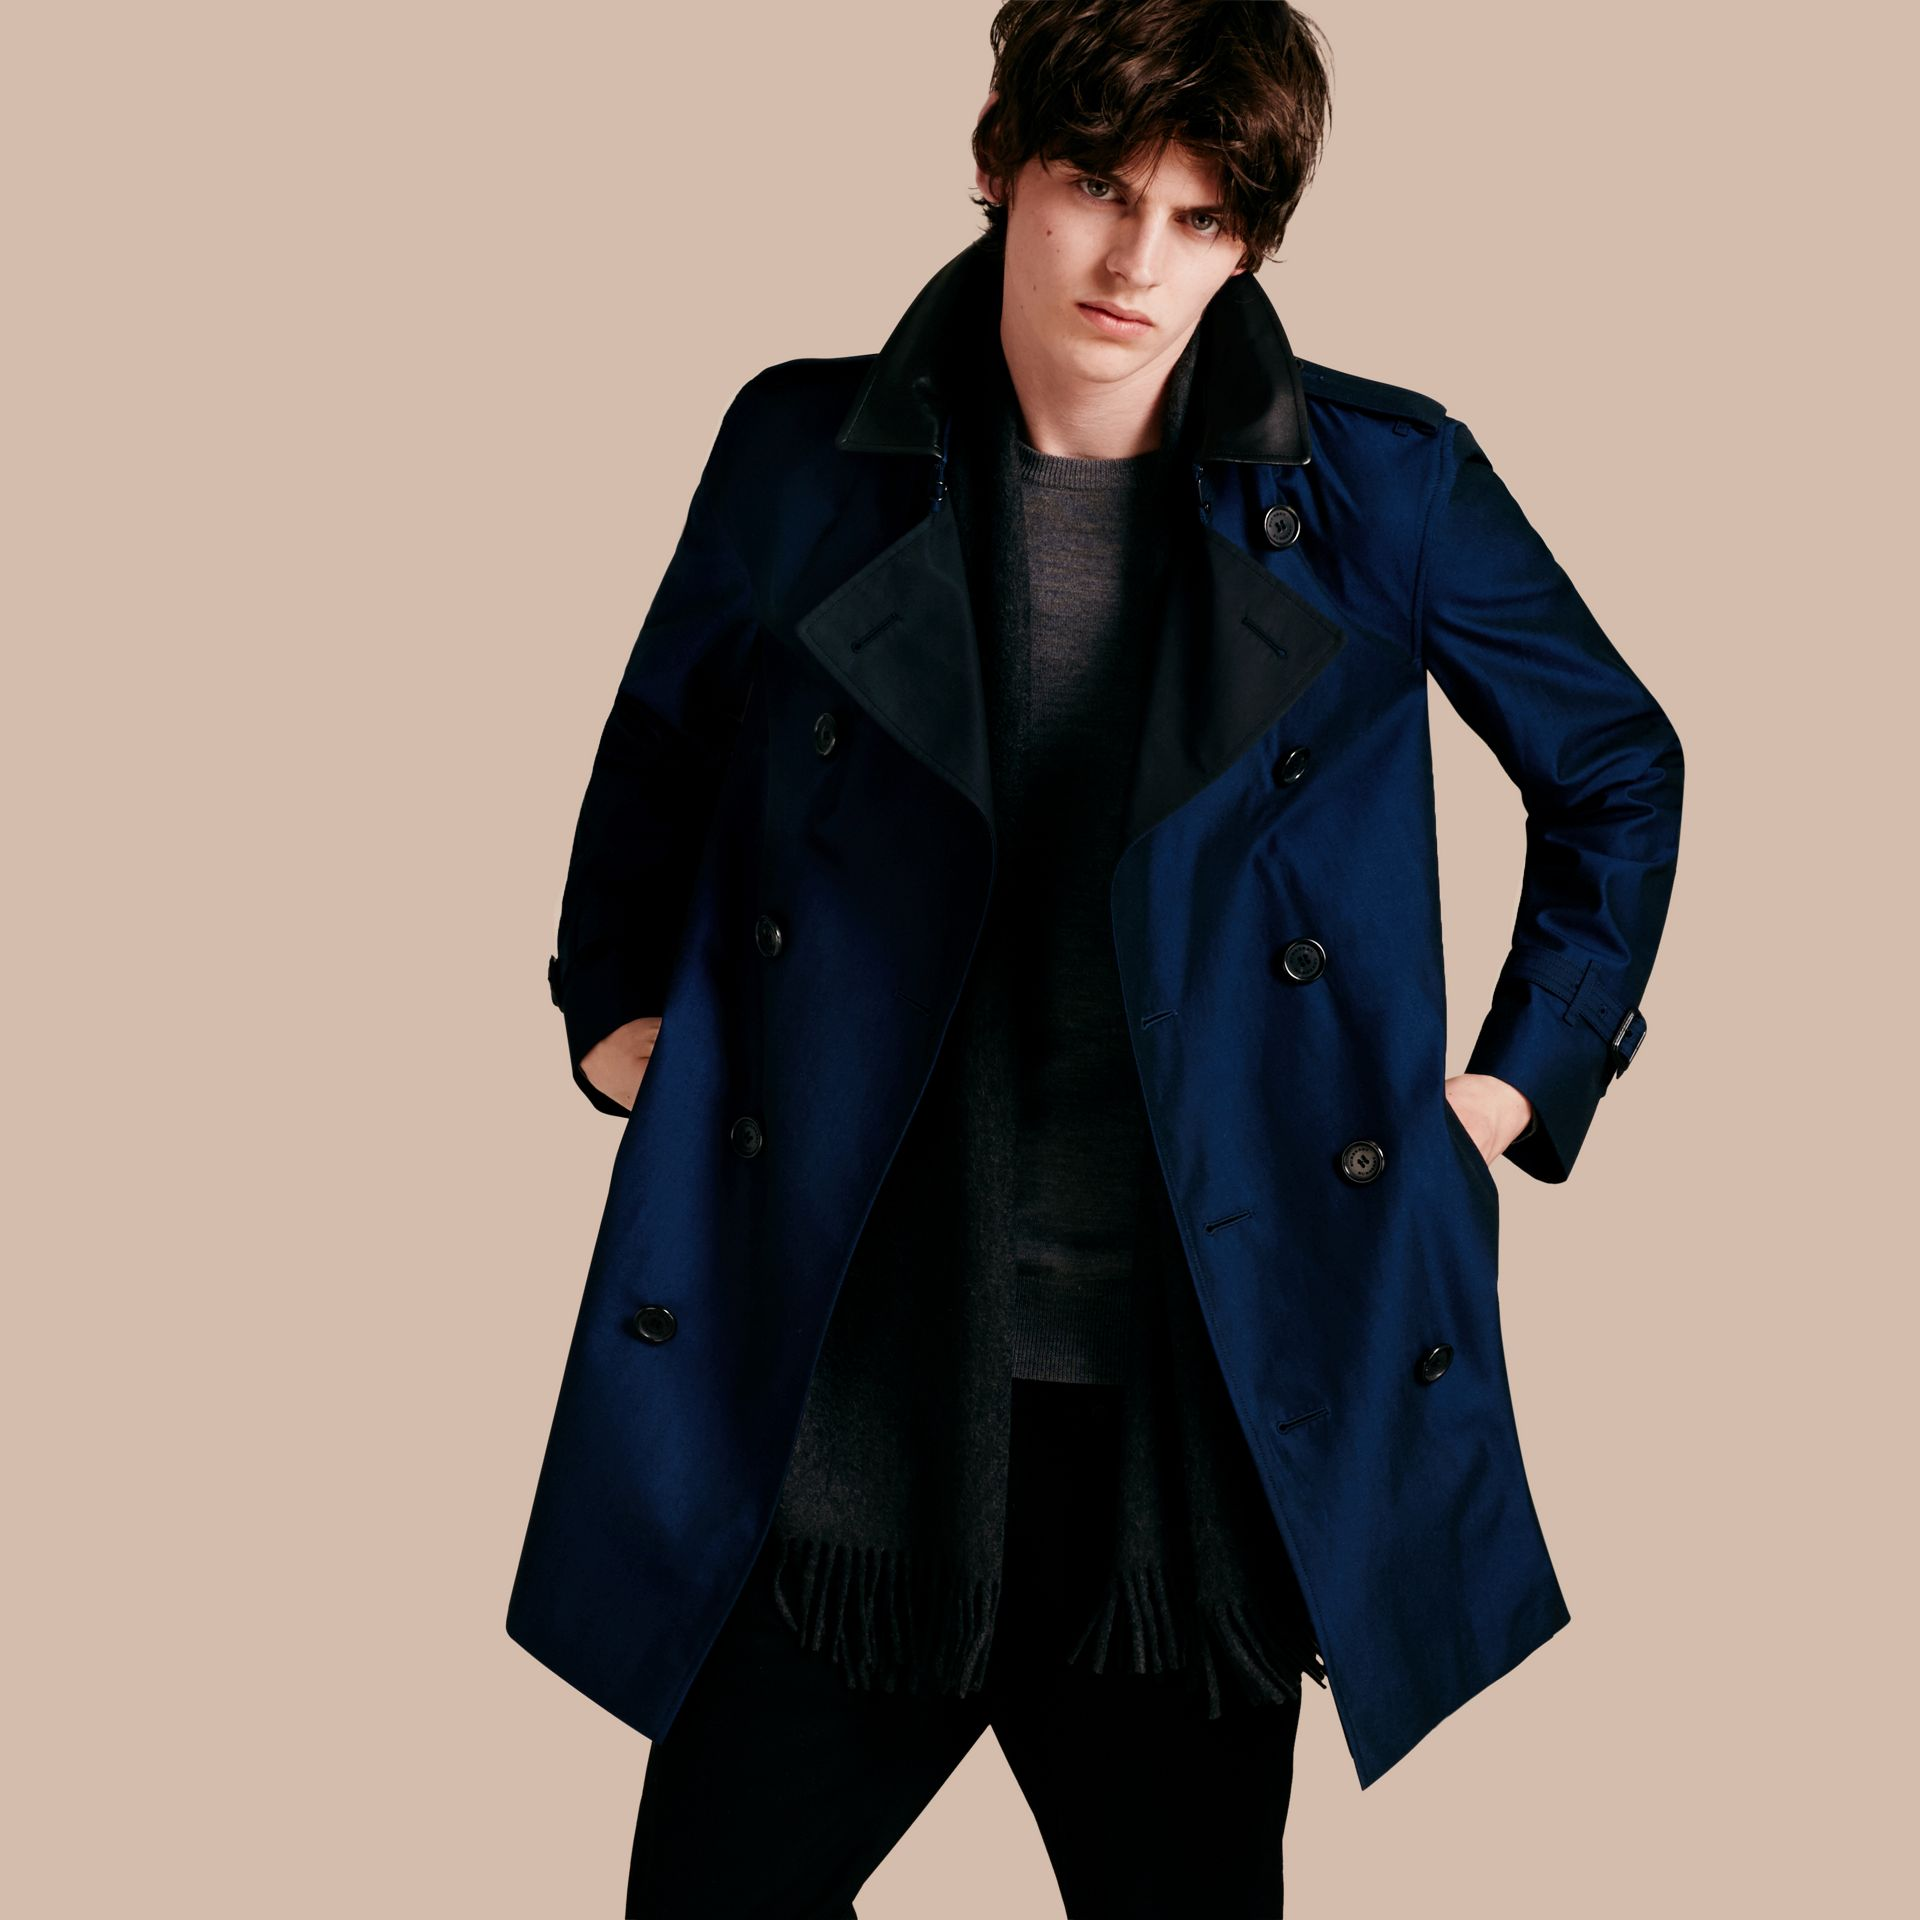 Bright regency blue Cotton Gabardine Trench Coat with Lambskin Topcollar - gallery image 1